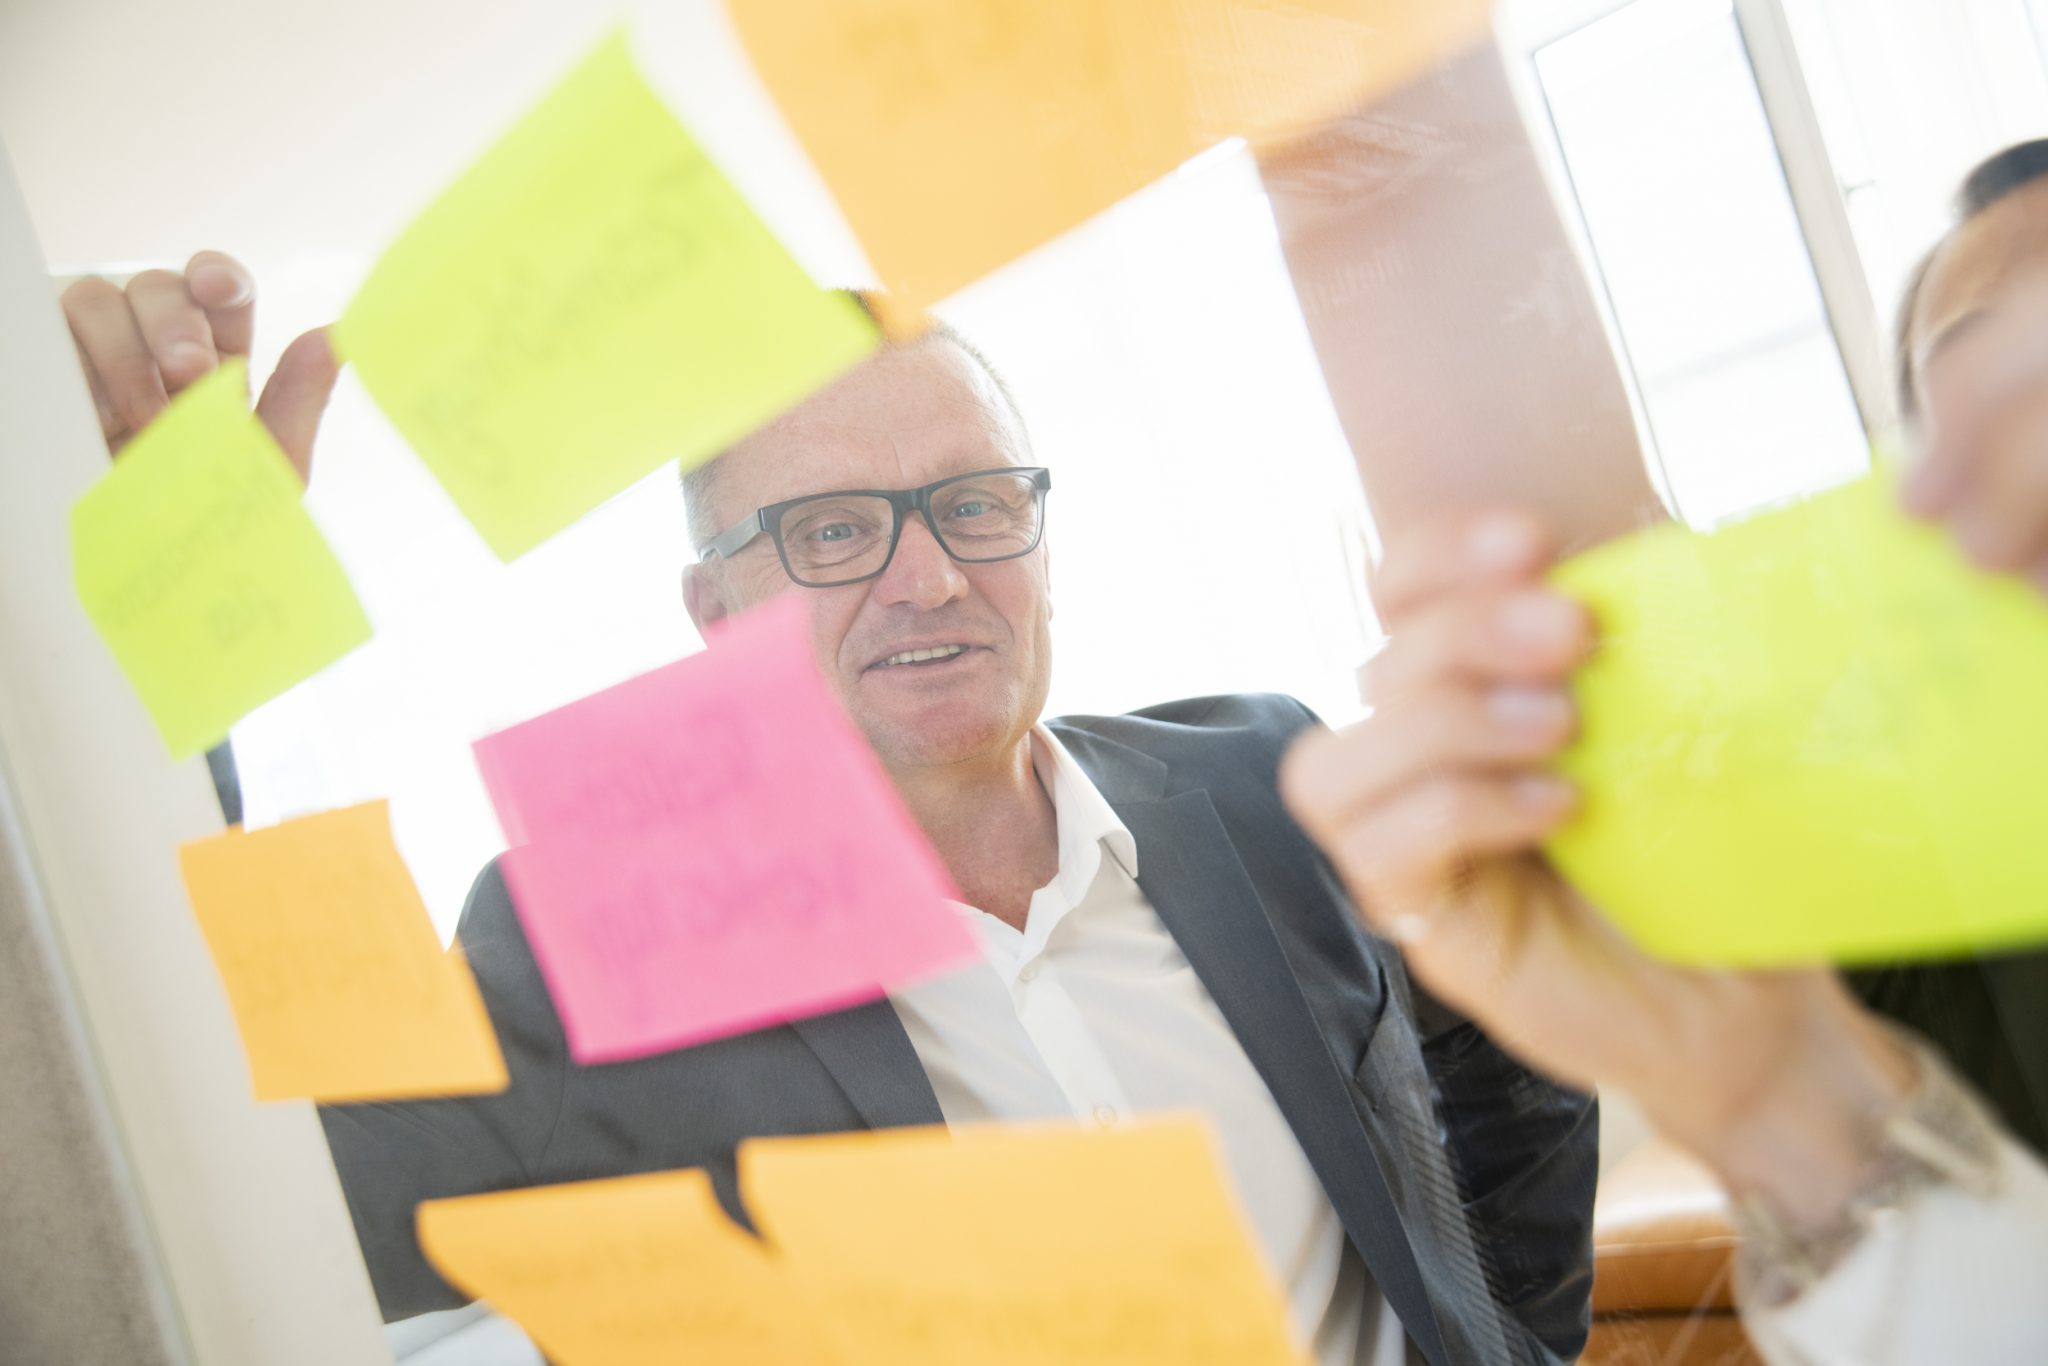 Scrum, Design thinking, Kanban und Co